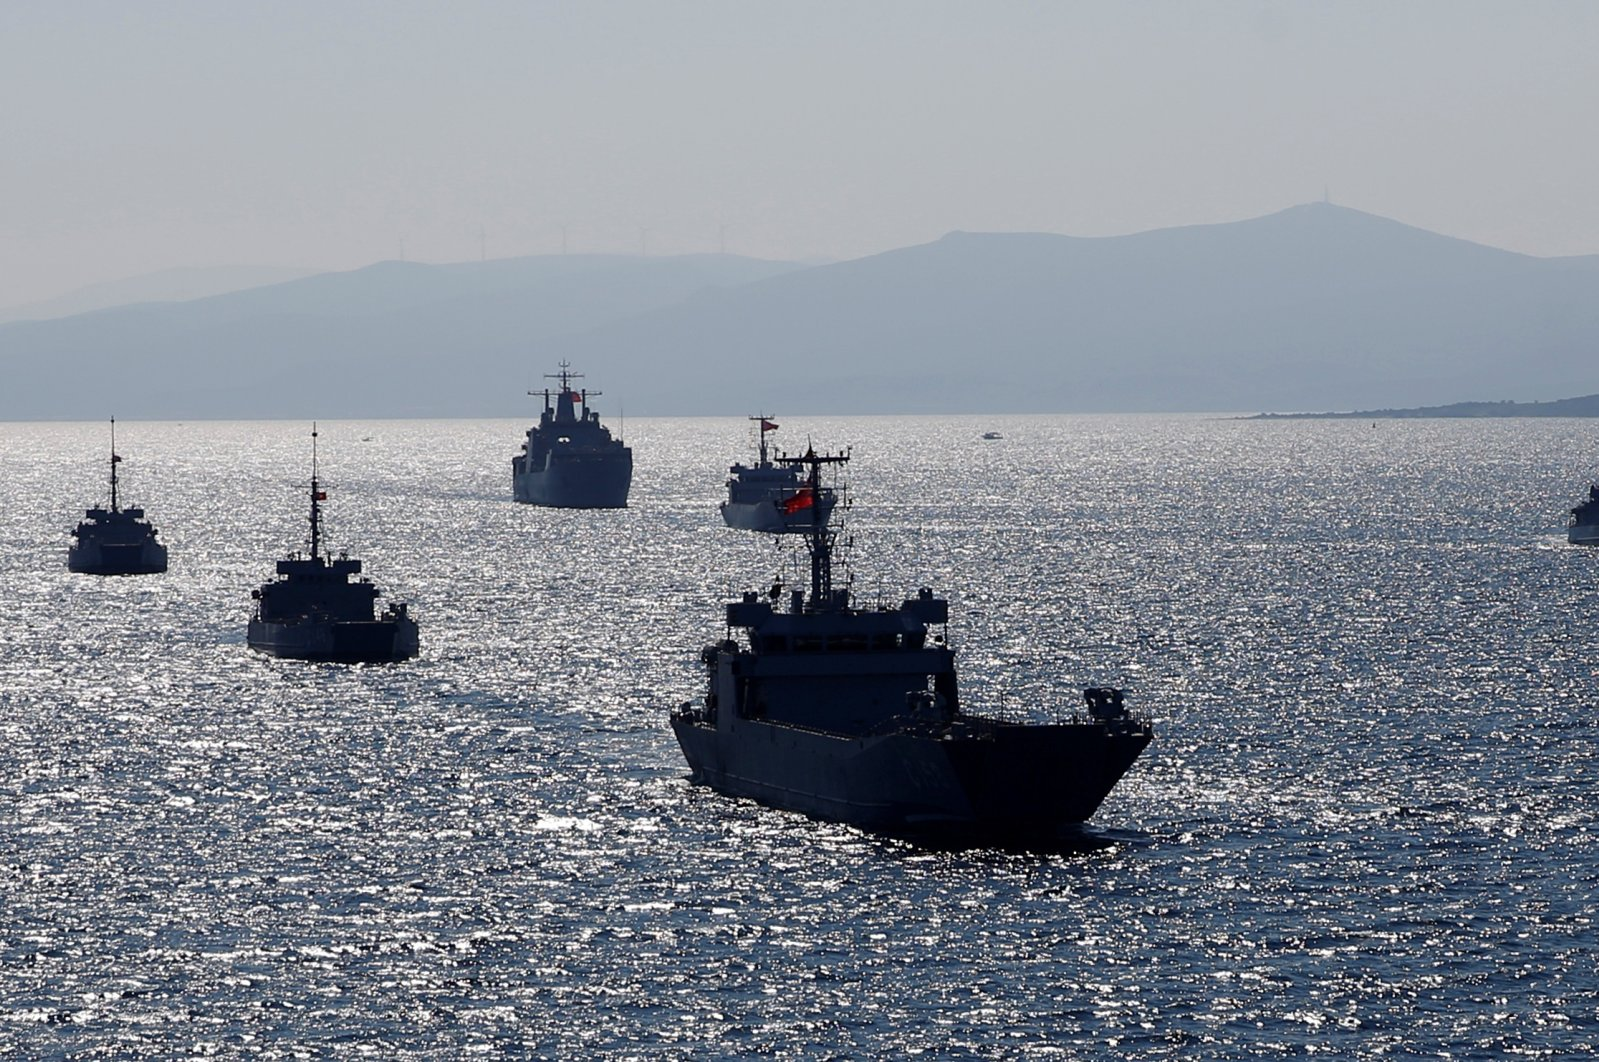 Turkish naval ships take part in a landing drill during the Blue Homeland naval exercise off the Aegean coastal town of Foça in Izmir Bay, western Turkey, March 5, 2019. (Reuters Photo)